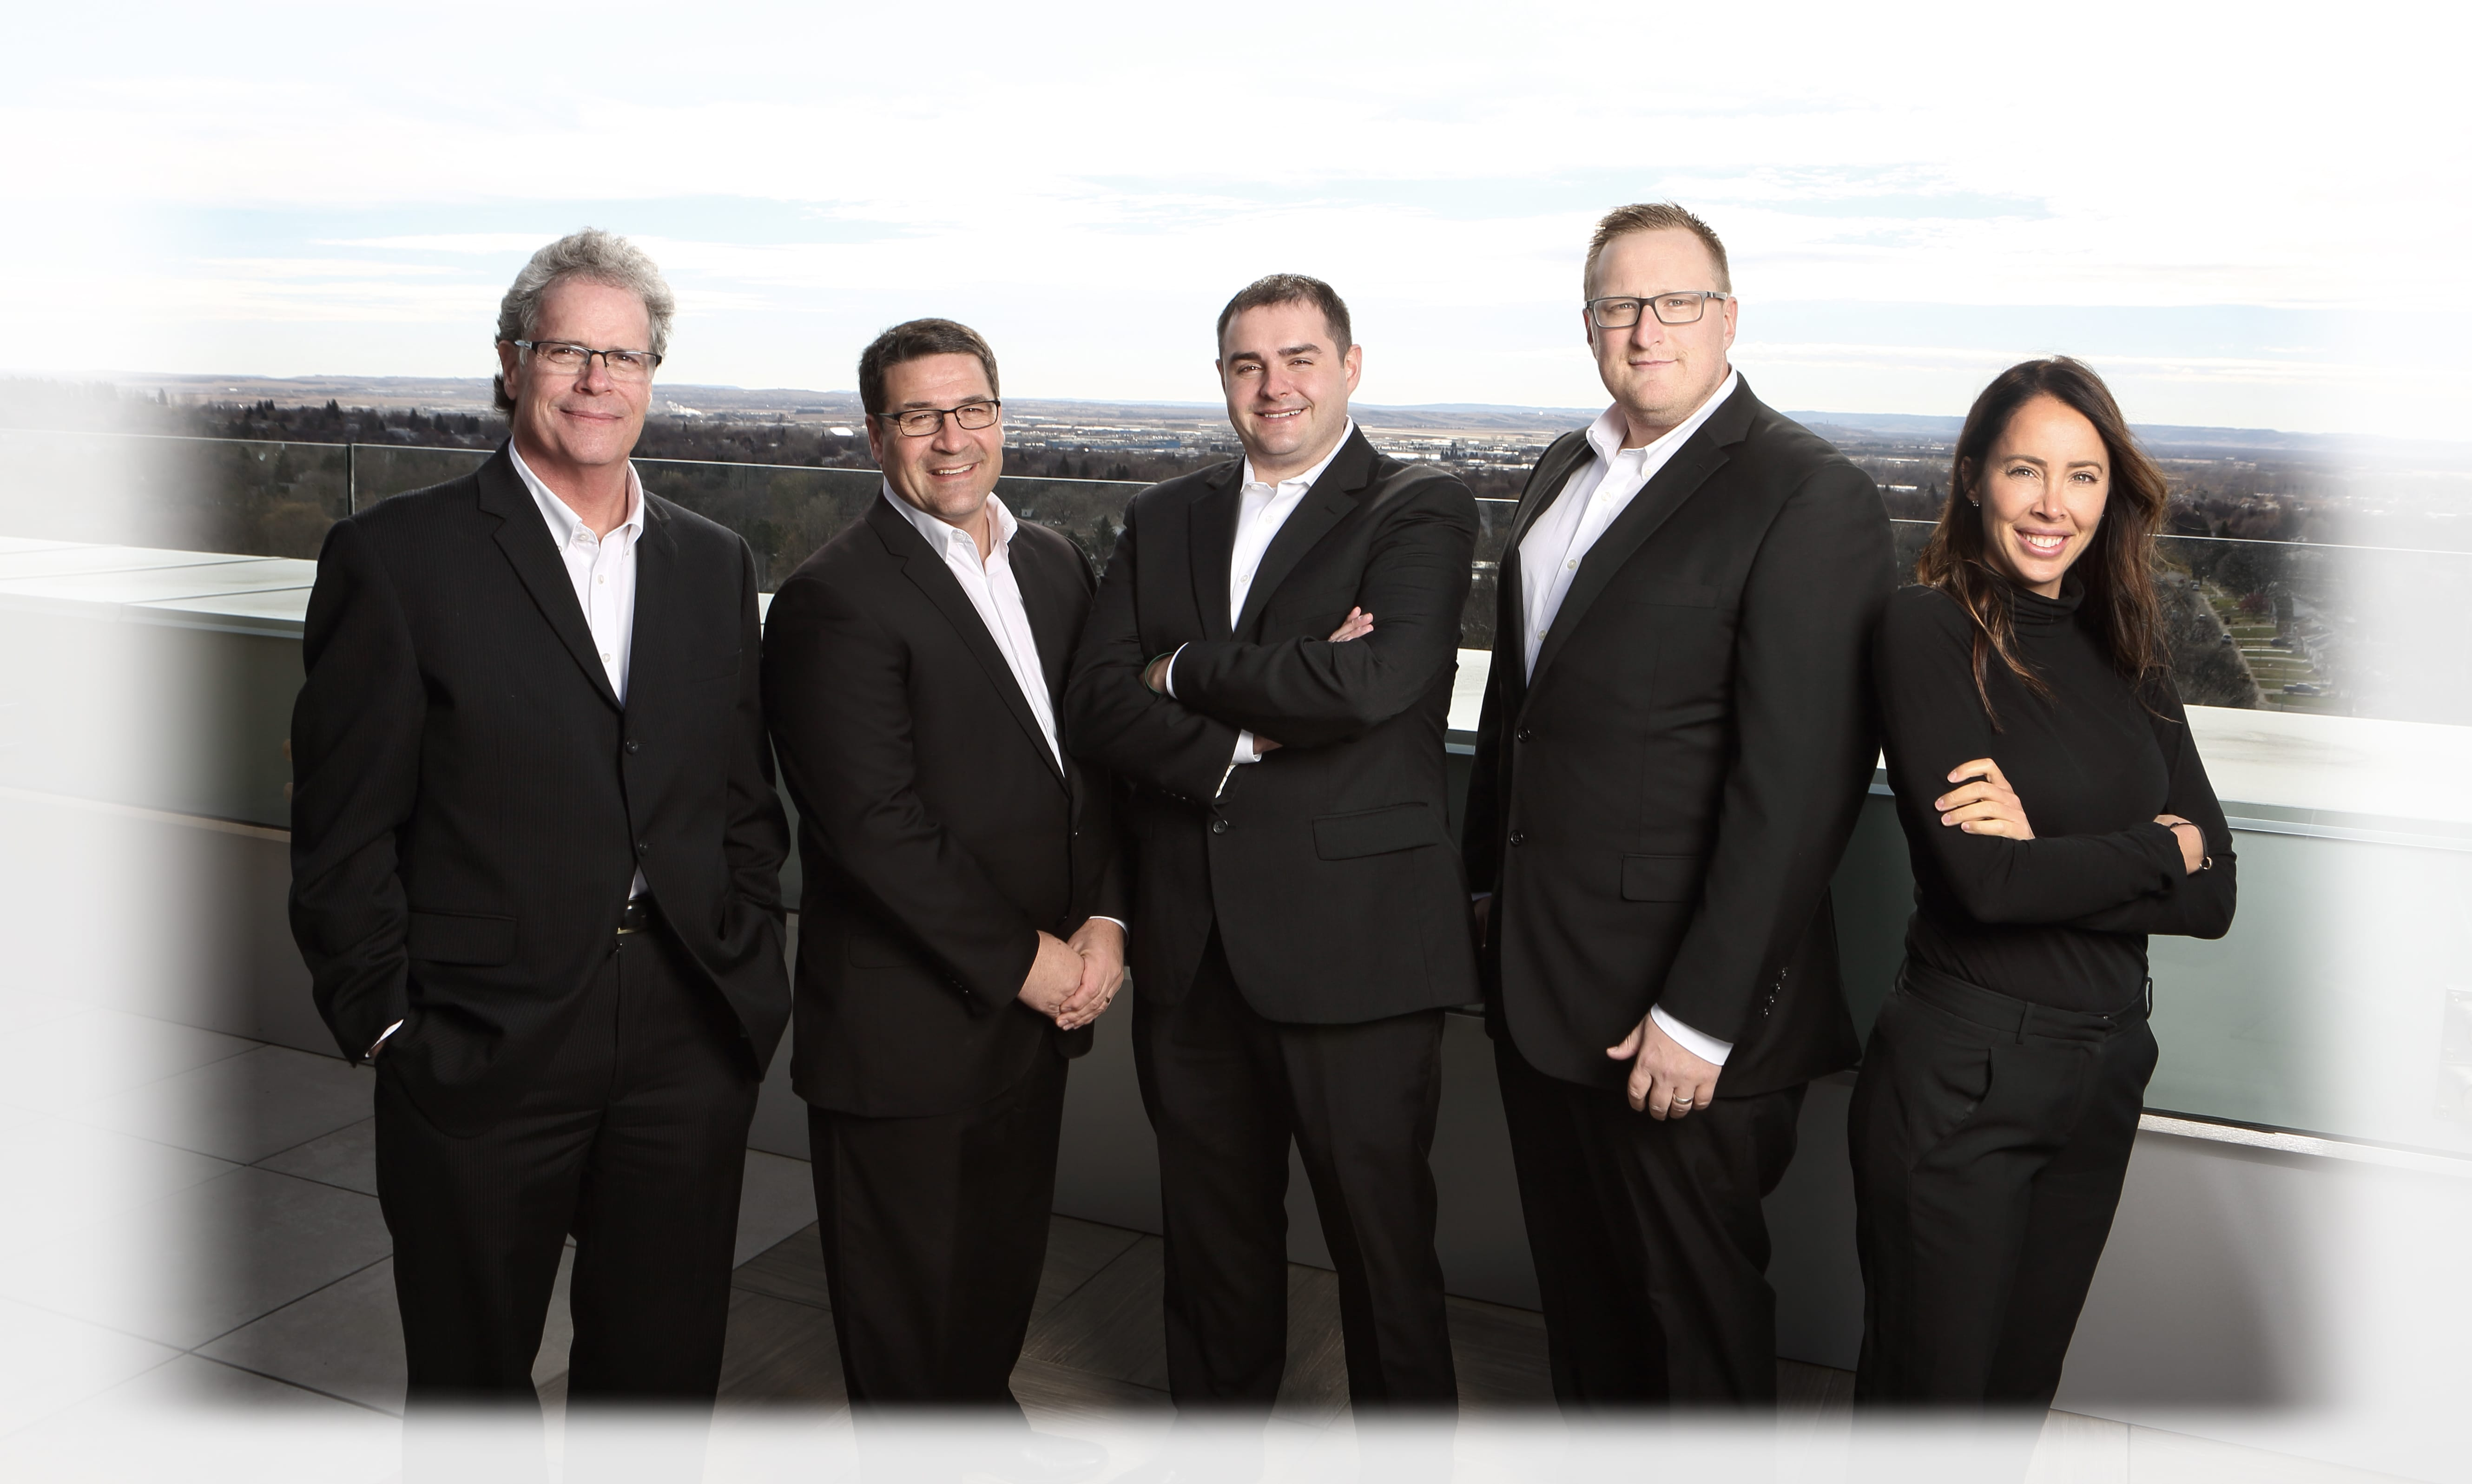 group of 5 brokers